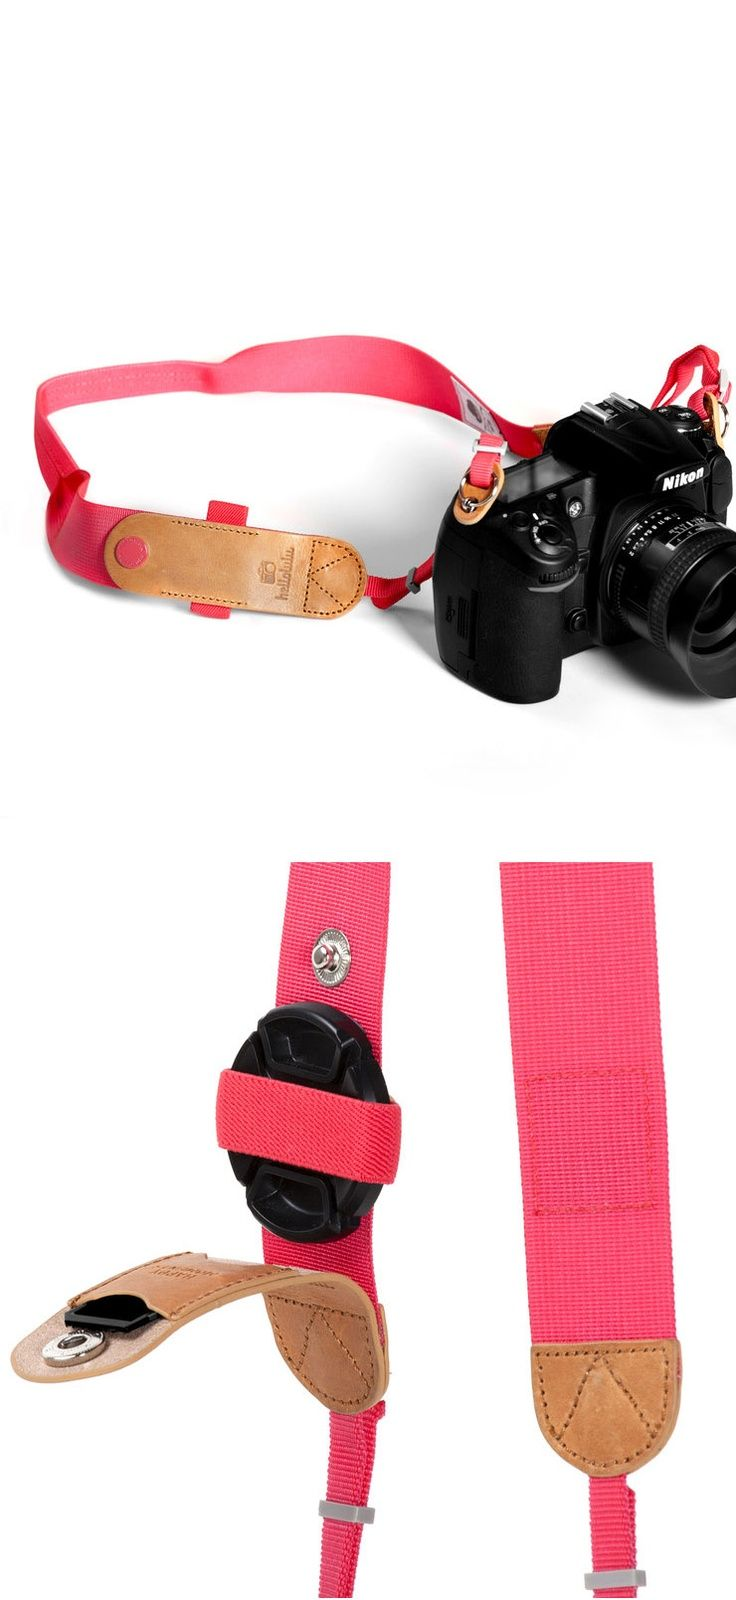 Camera strap with lens cap holder...wish I would have had this before I lost my